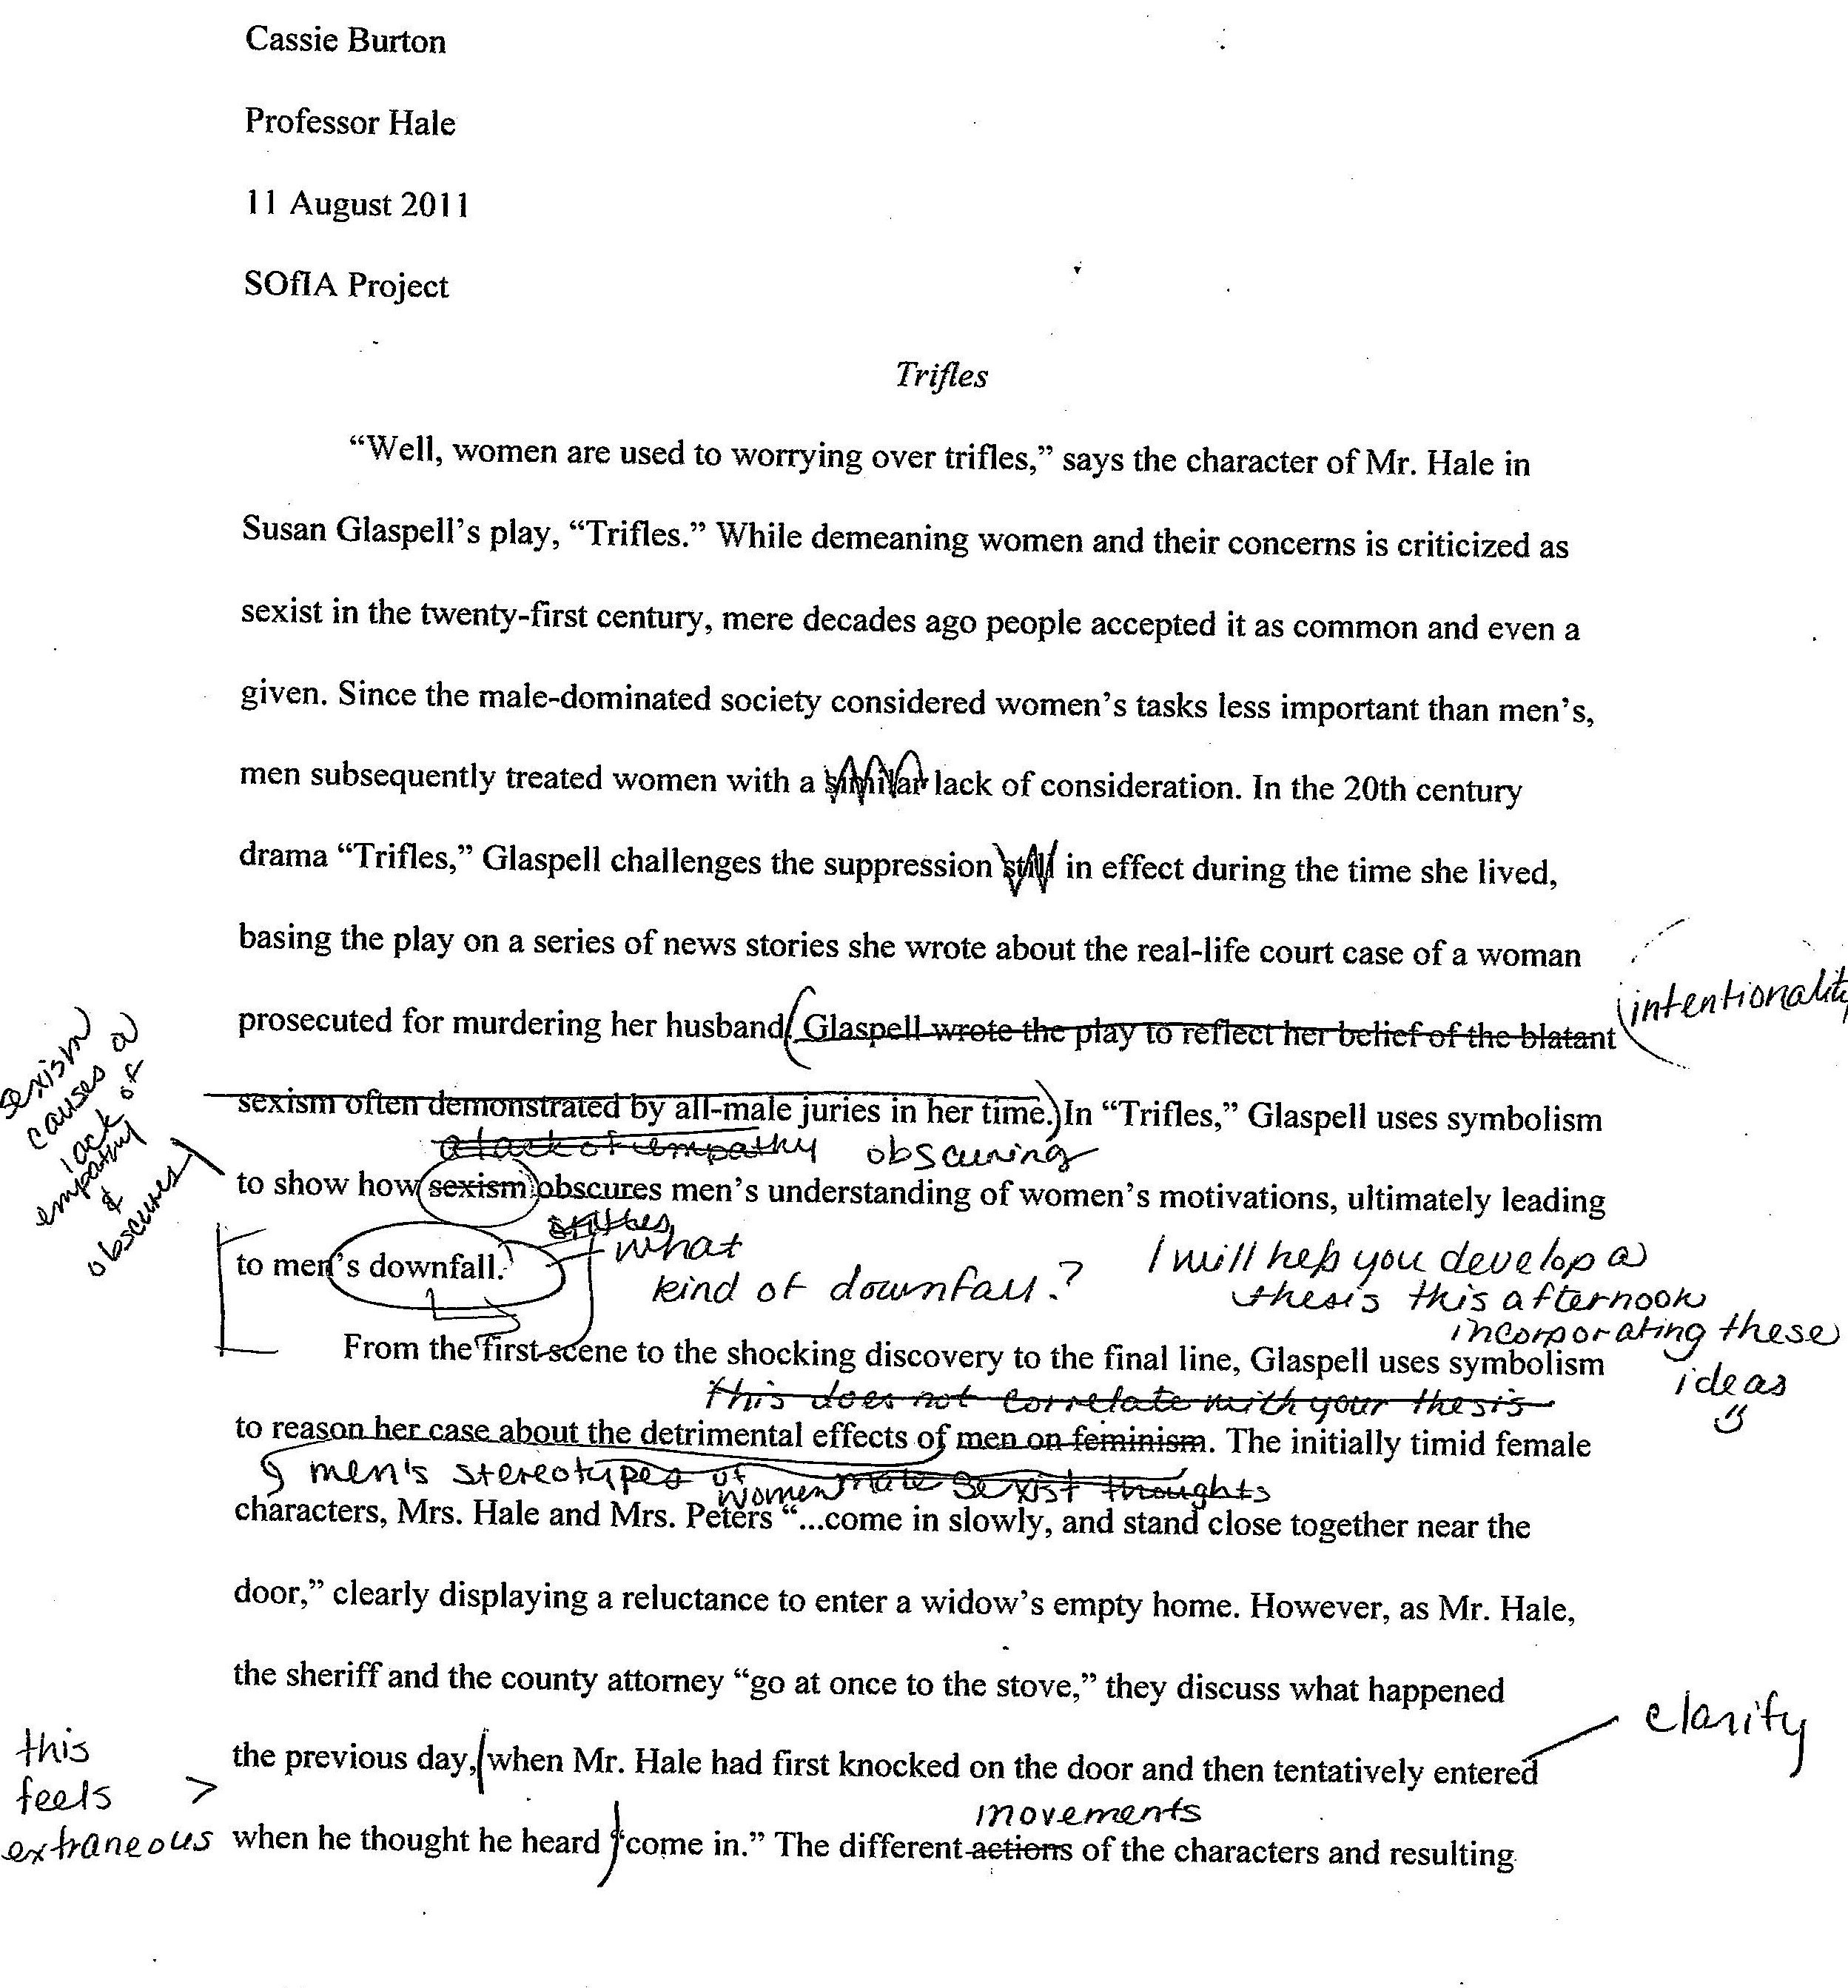 rhetorical device essay How to write: ap rhetorical analysis paragraphs and essays things you  must know in order to accurately analyze a text: 1 soaps 2 rhetorical  strategies.